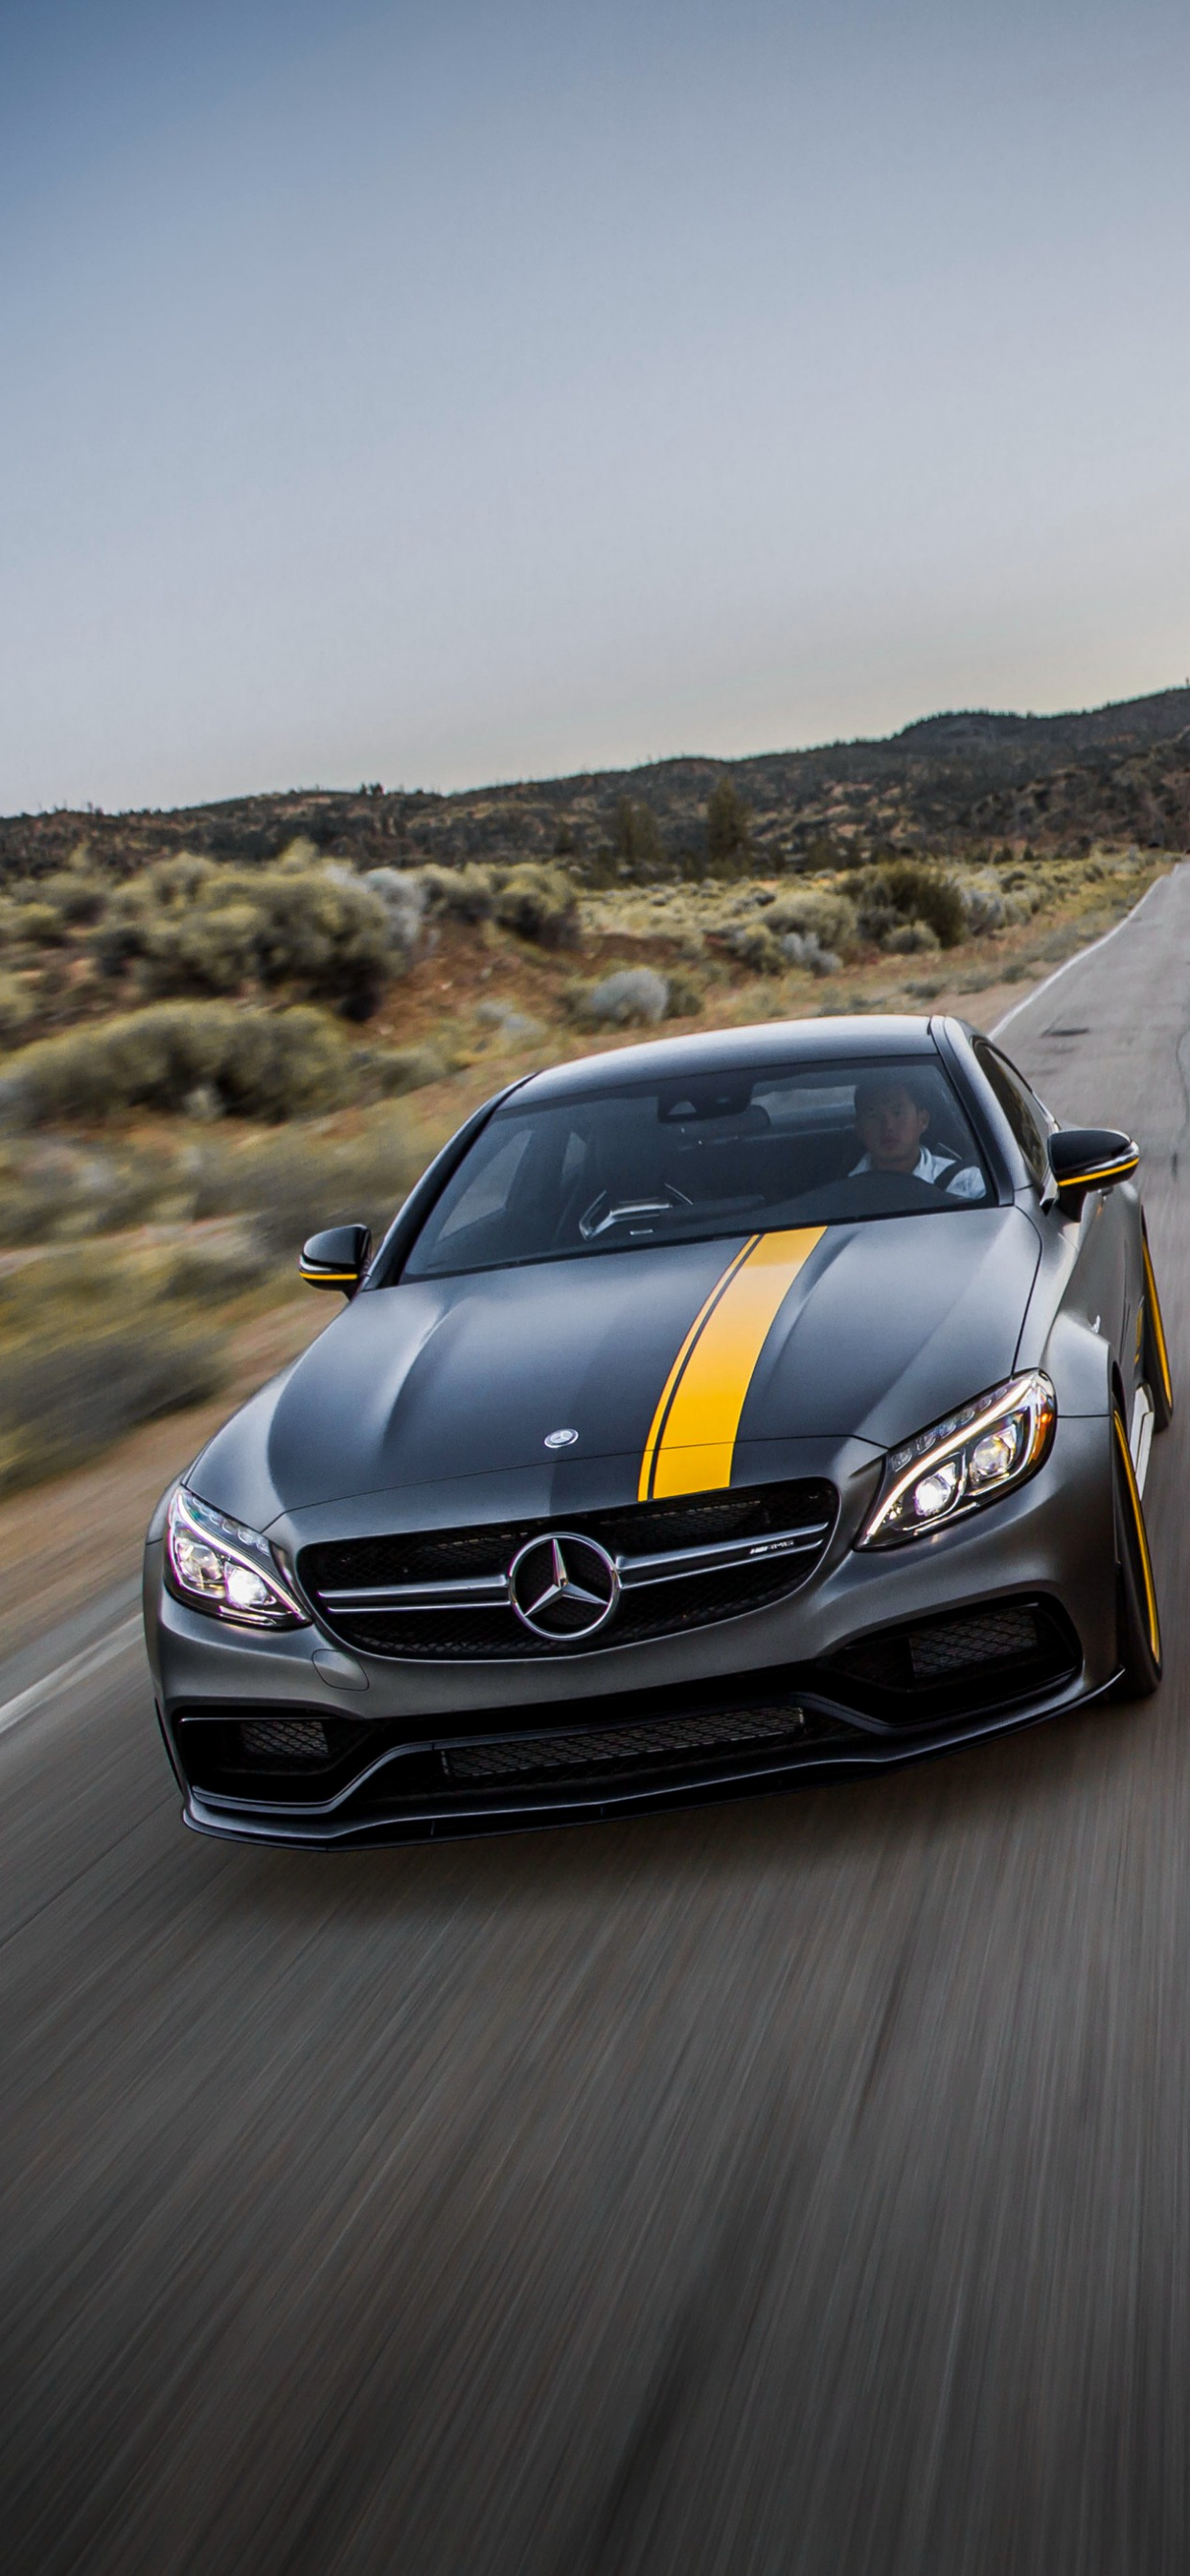 Mercedes C Class Wallpapers posted by Christopher Peltier